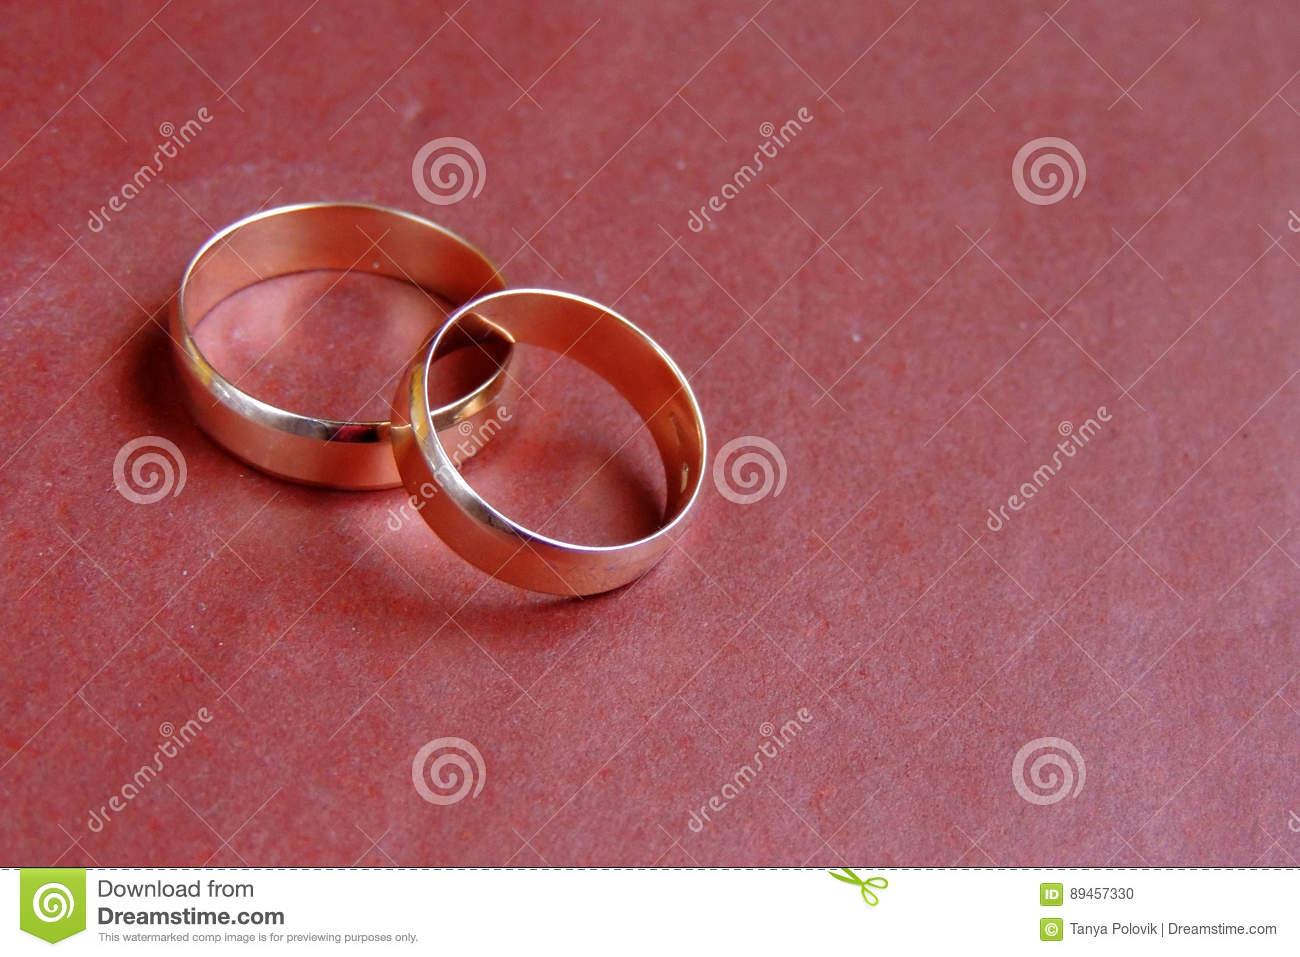 Couple wedding rings stock photo. Image of dark, forever - 89457330